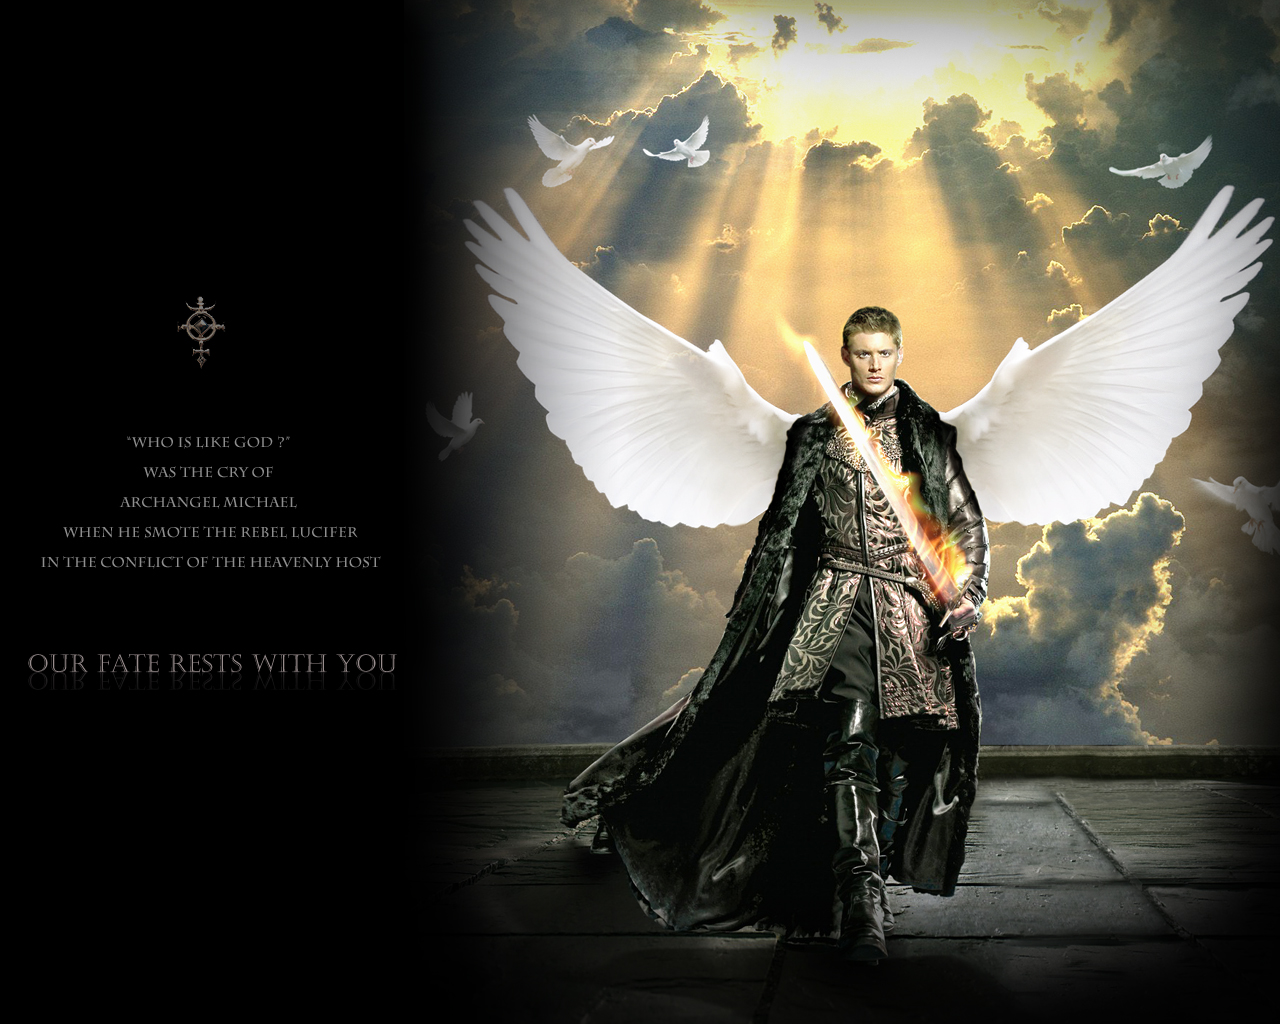 Archangel Michael Supernatural